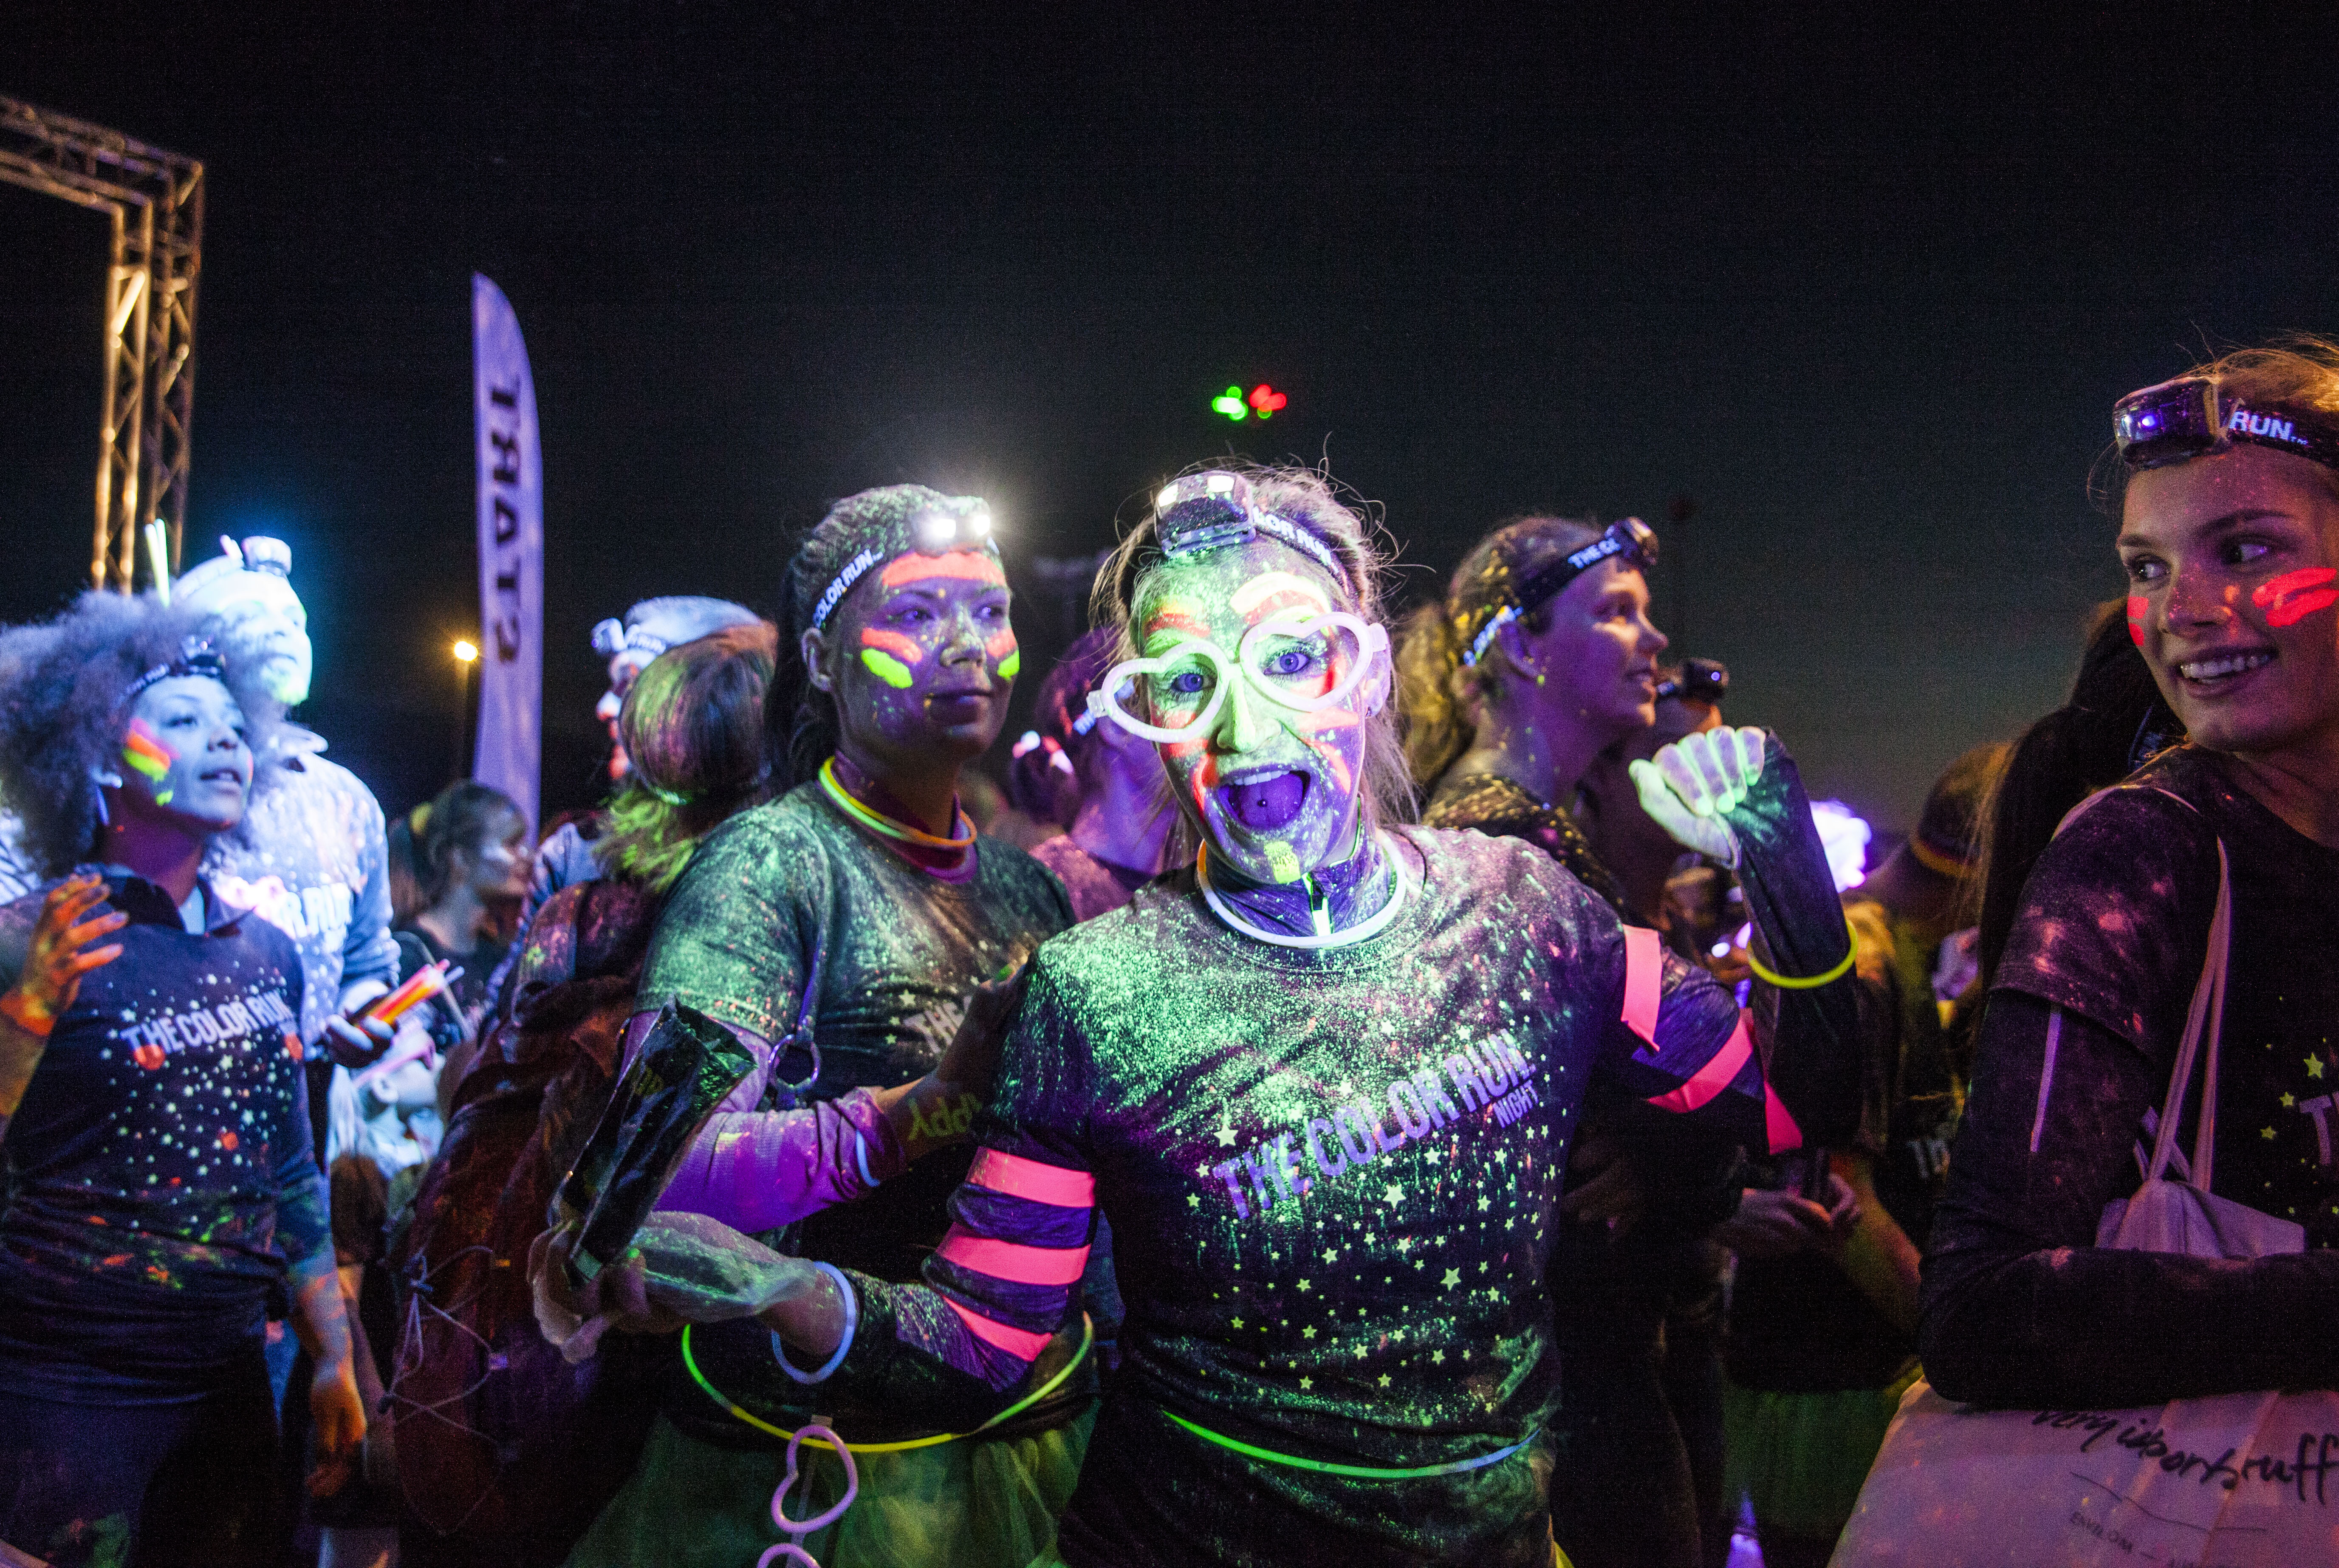 TheColorRunNight2015_HelenaLundquist_mindre_9